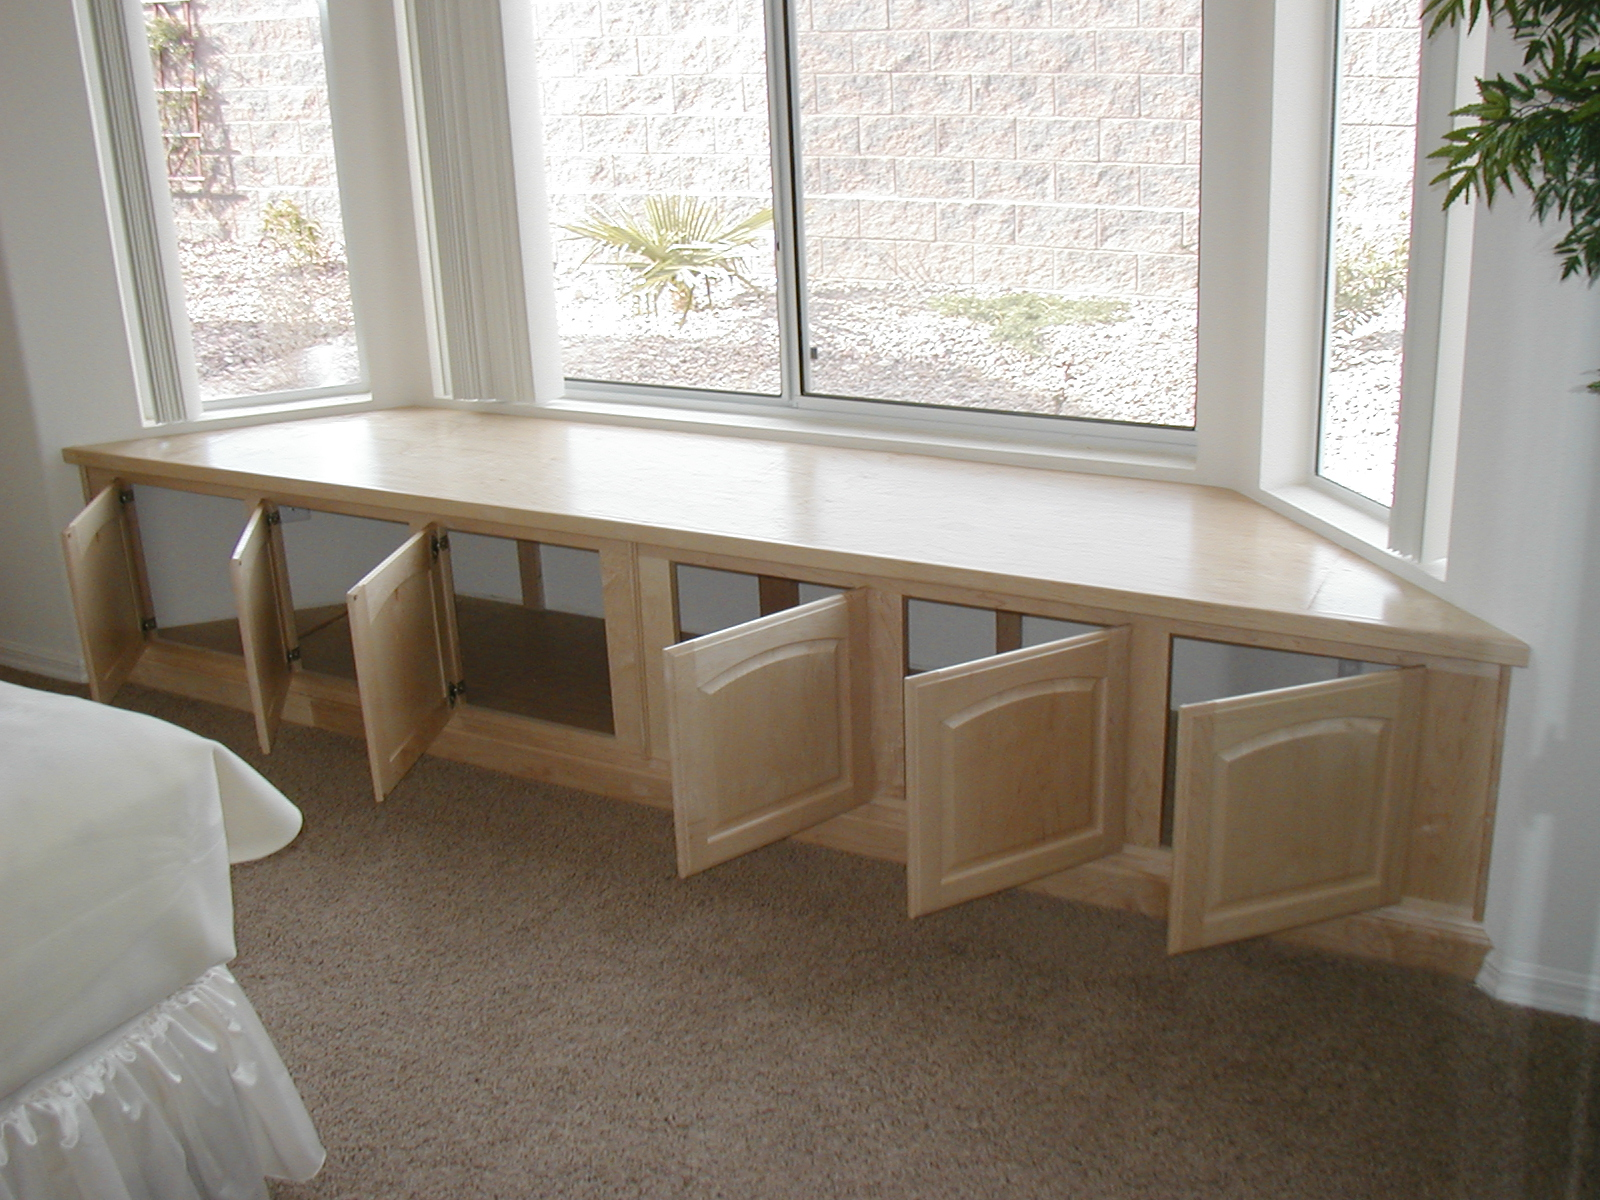 window seat maple natural window seat bedroom